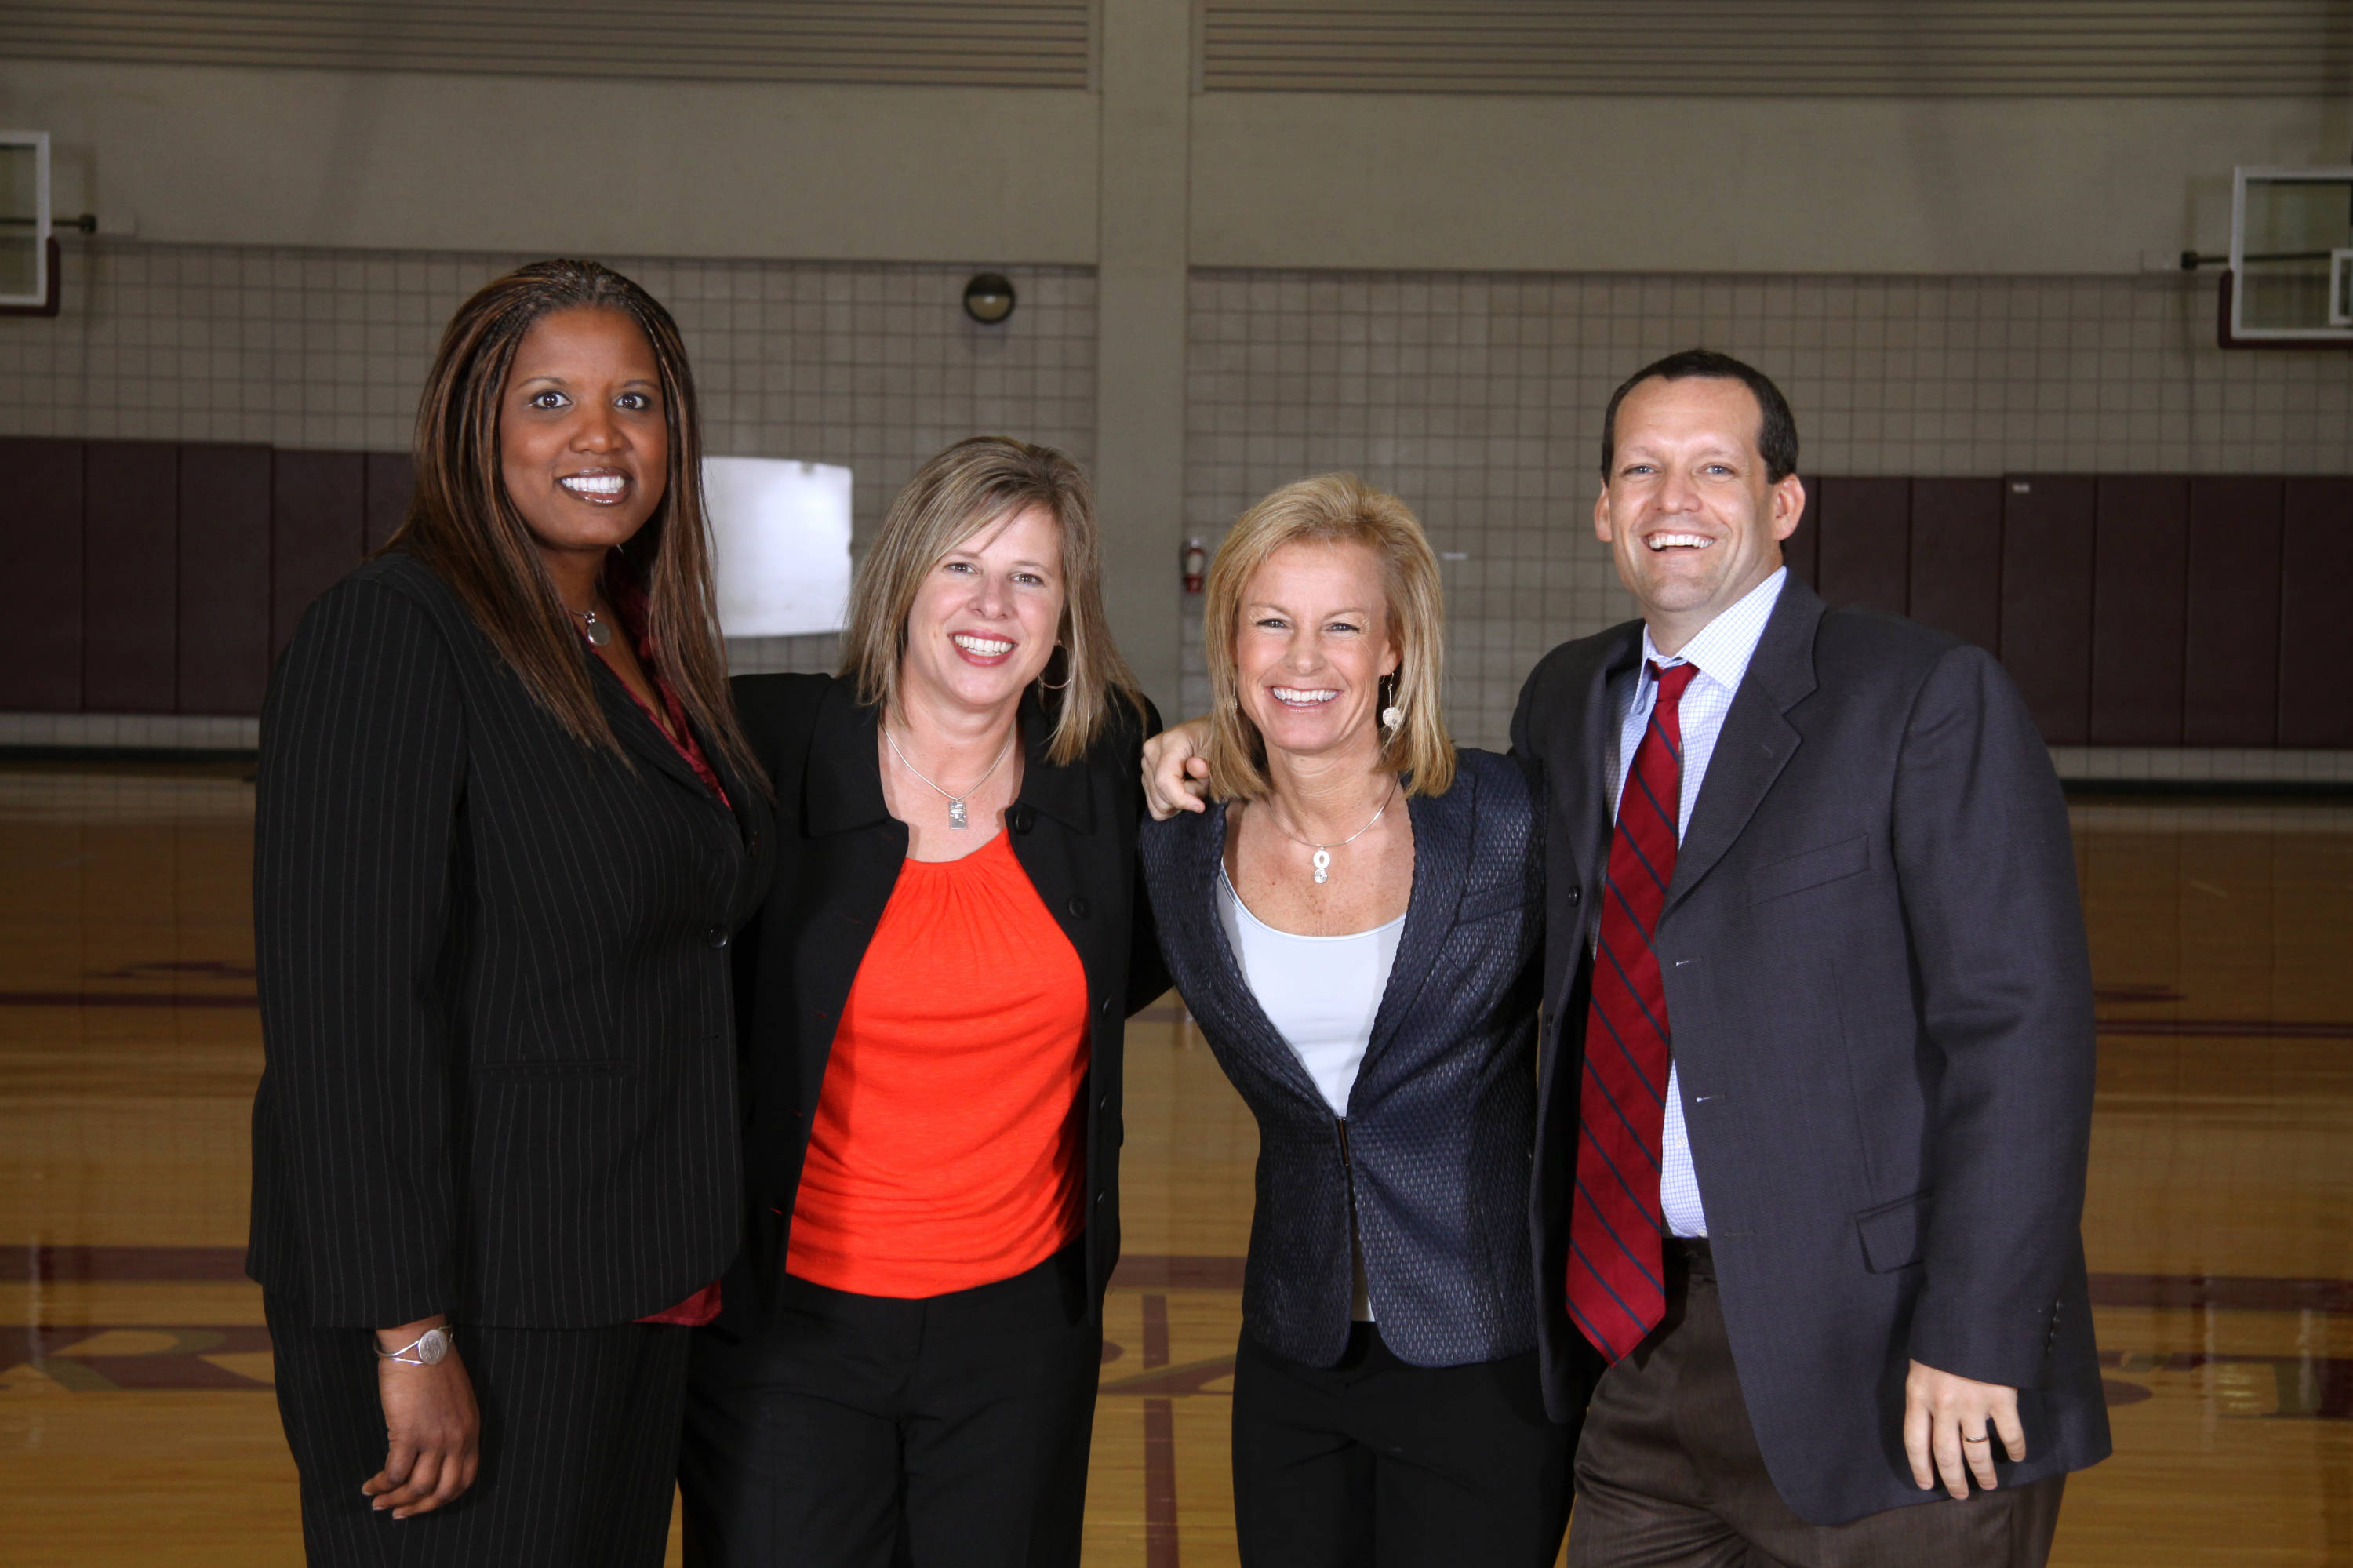 Sept. 23 ... The 2010-11 Florida State coaching staff: Angie Johnson, Cori Close, Sue Semrau and Lance White.